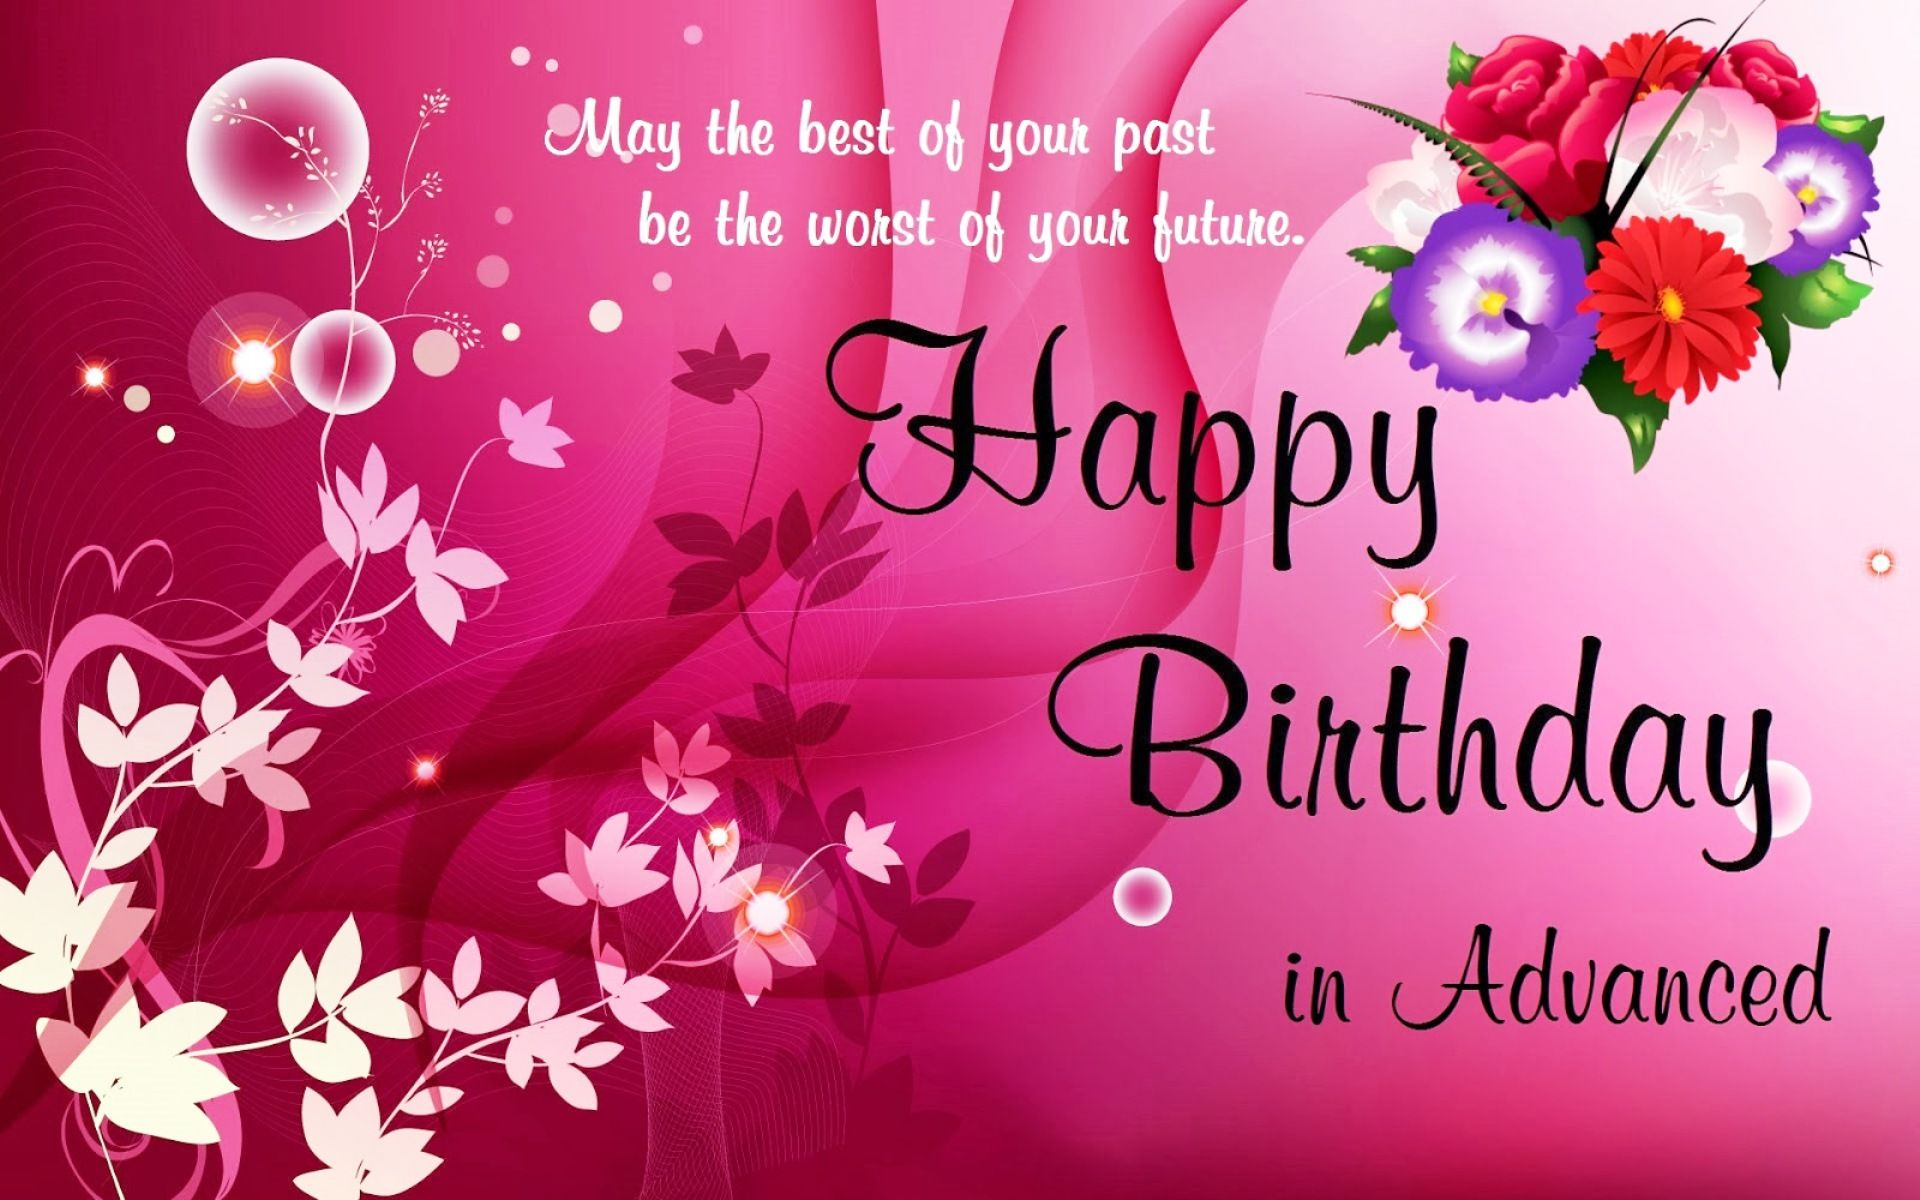 Happy Birthday Images Free Download With Wishes